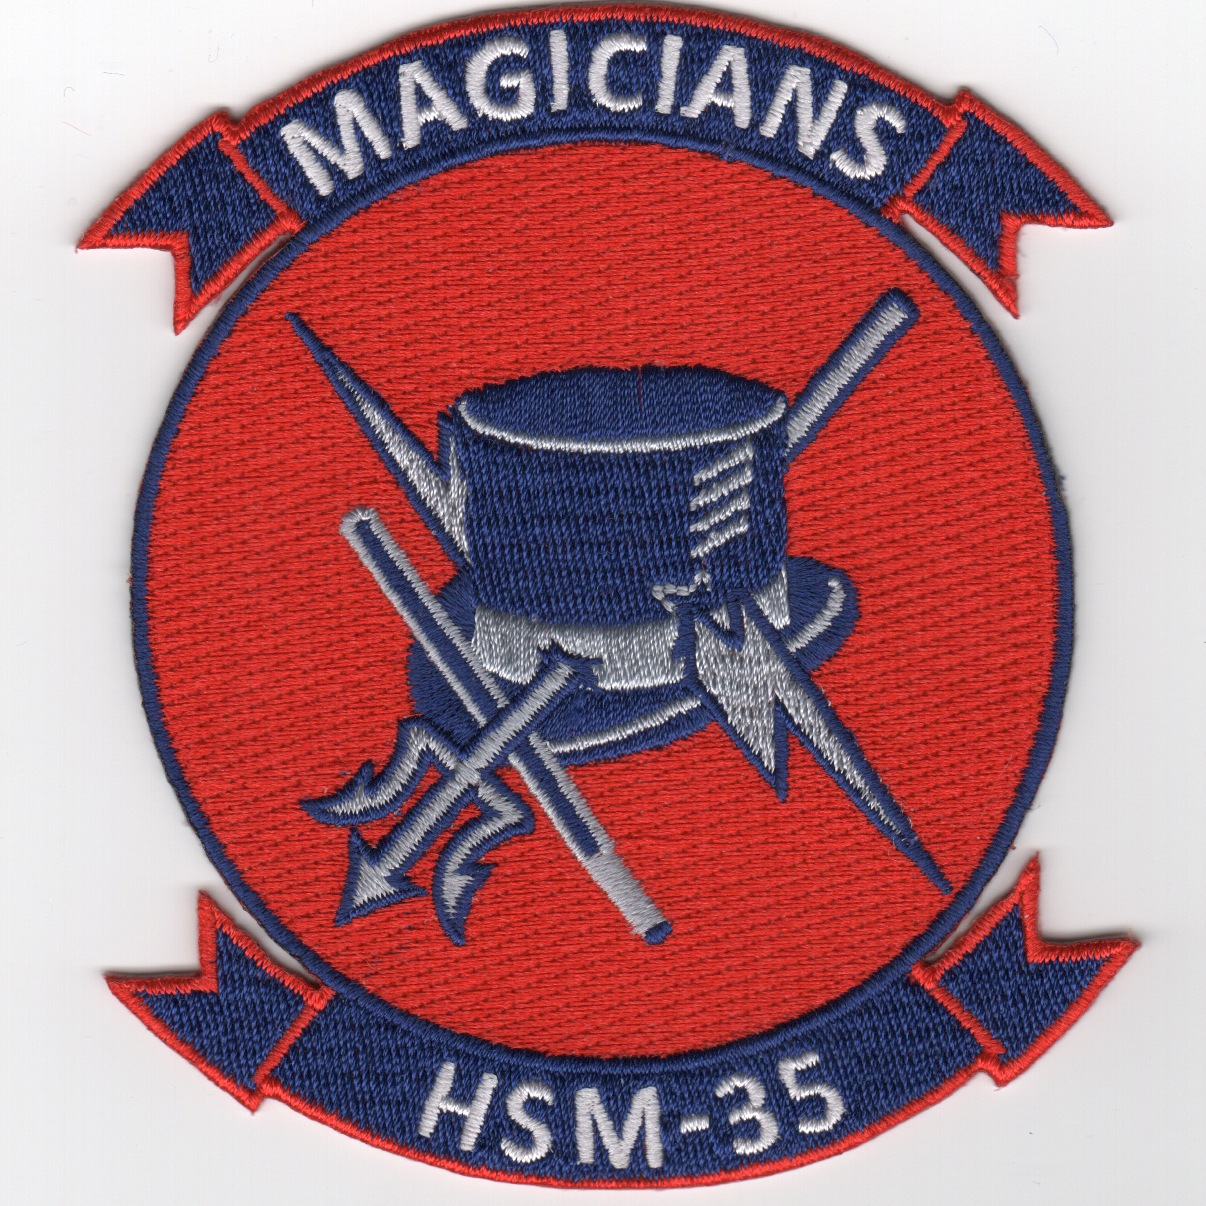 HSM-35 'Magicians' Squadron Patch (Red)